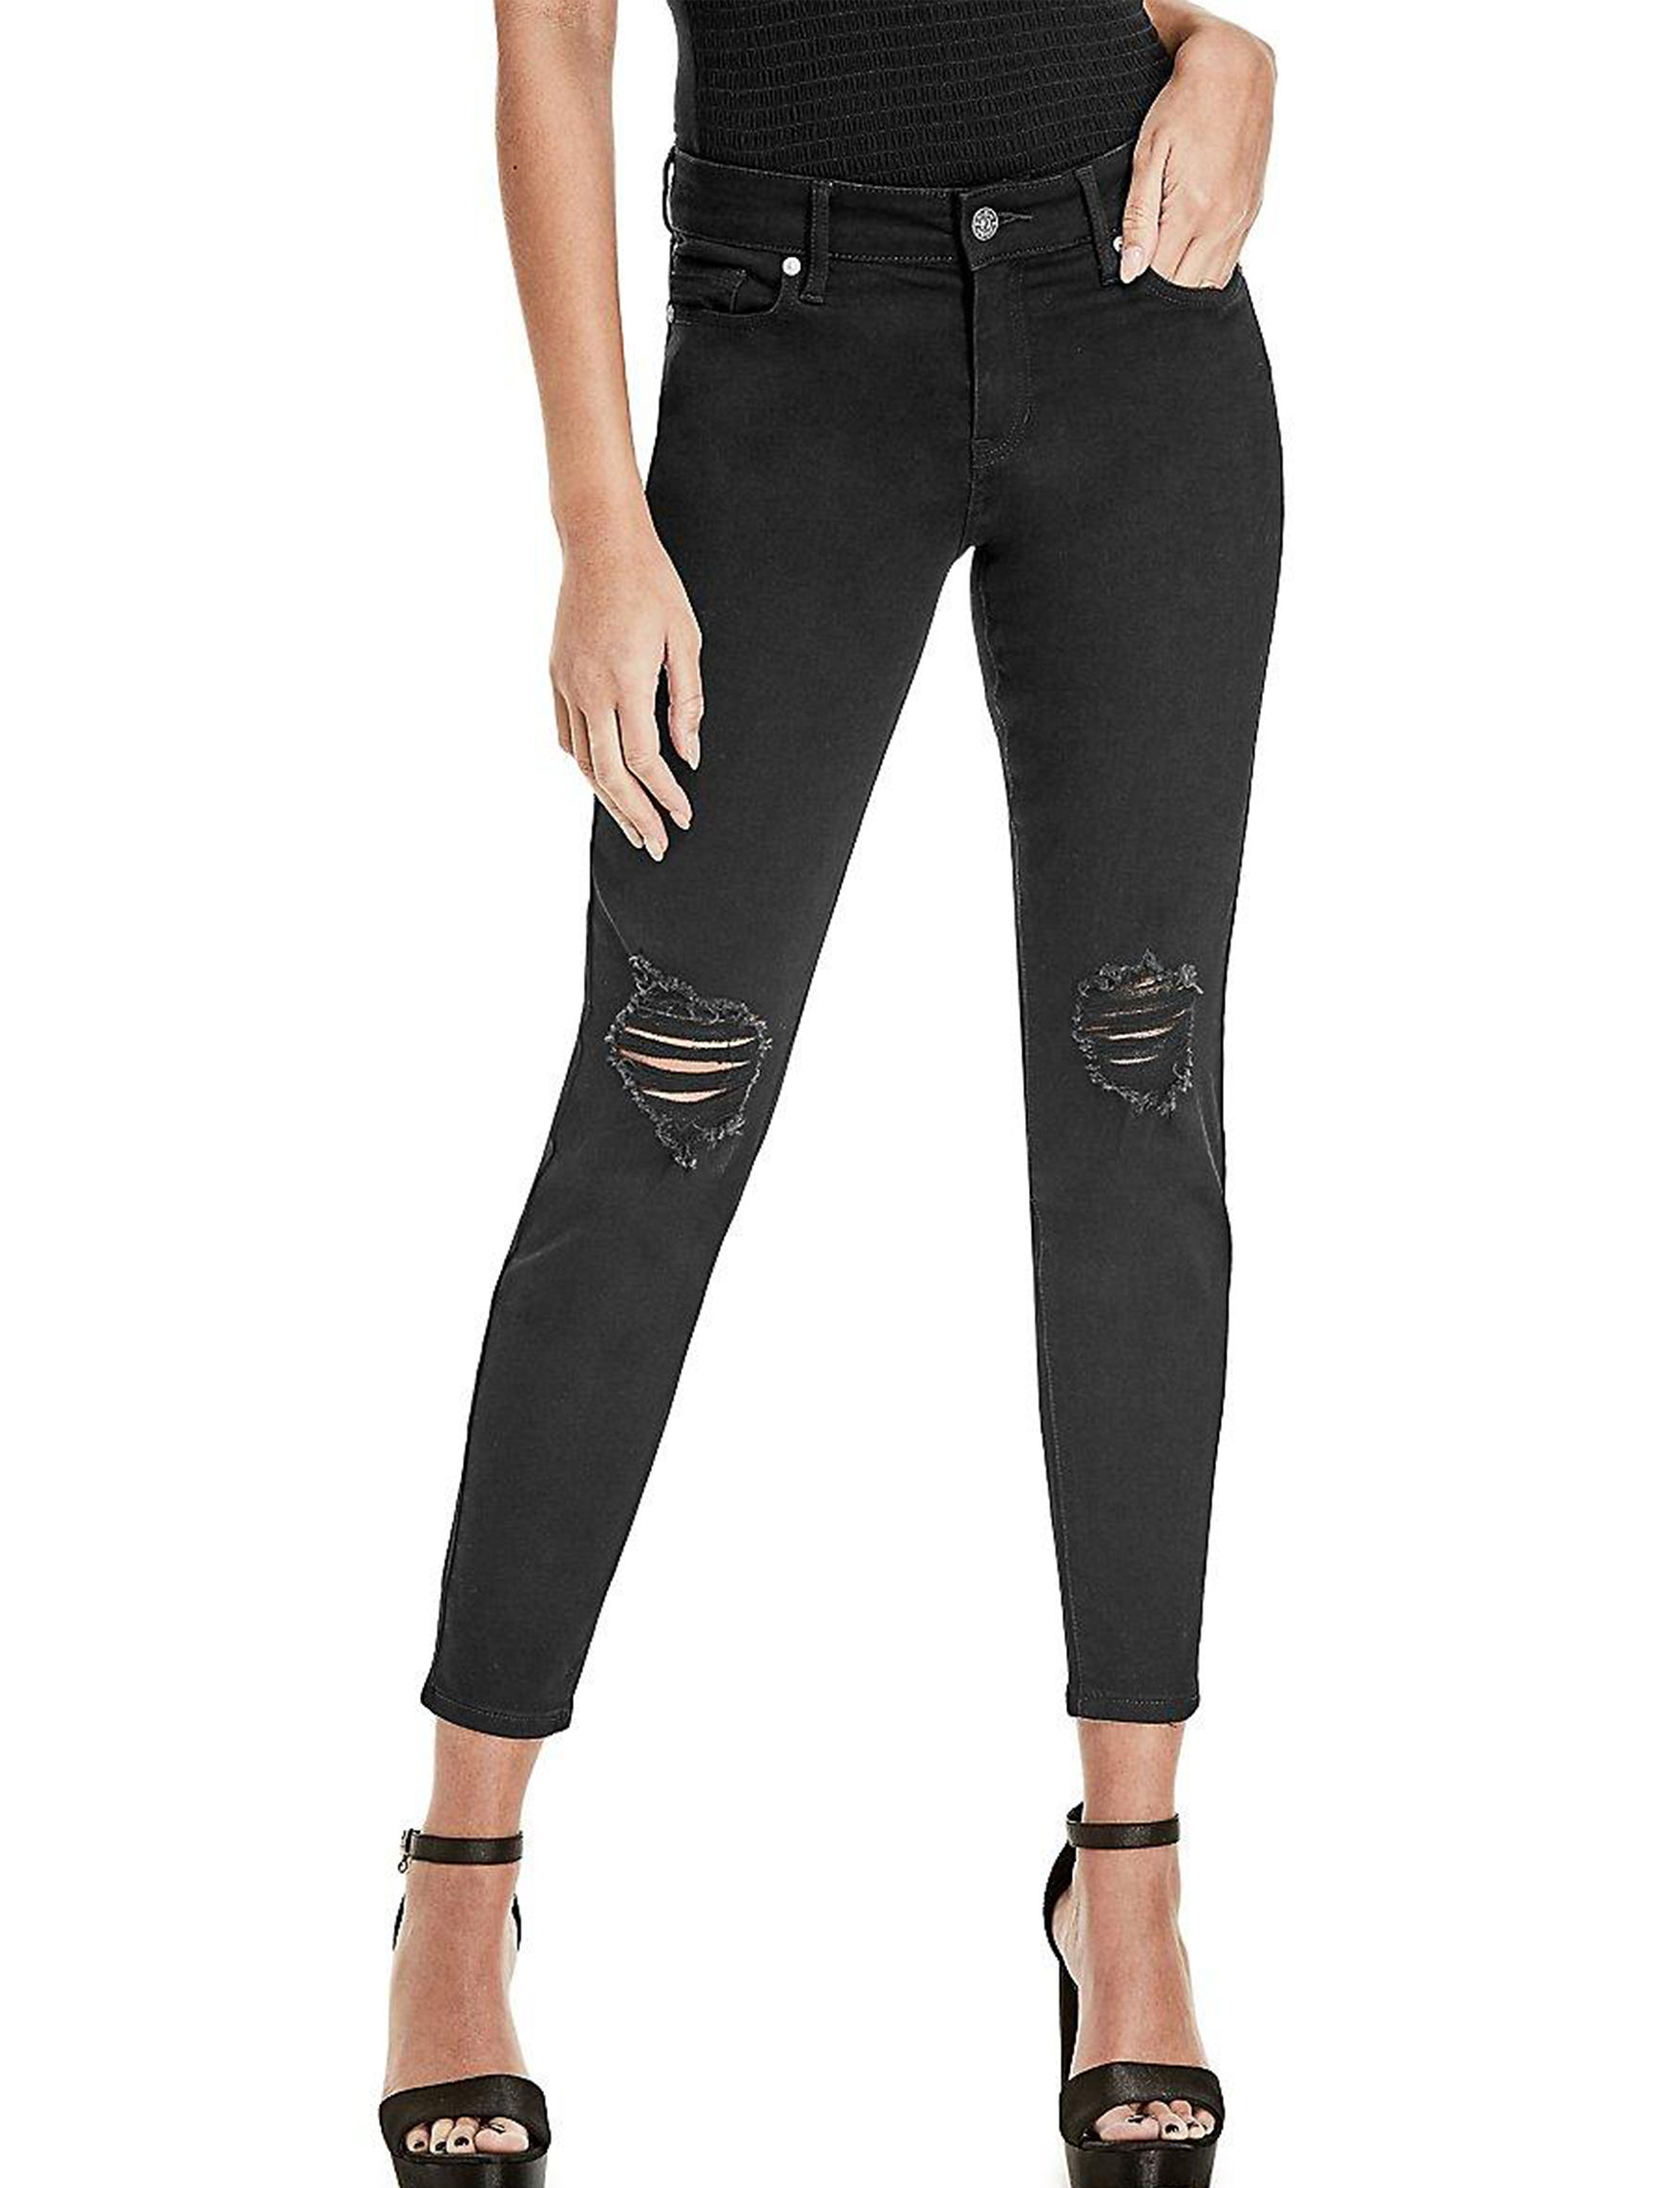 G by Guess Jet Black Skinny